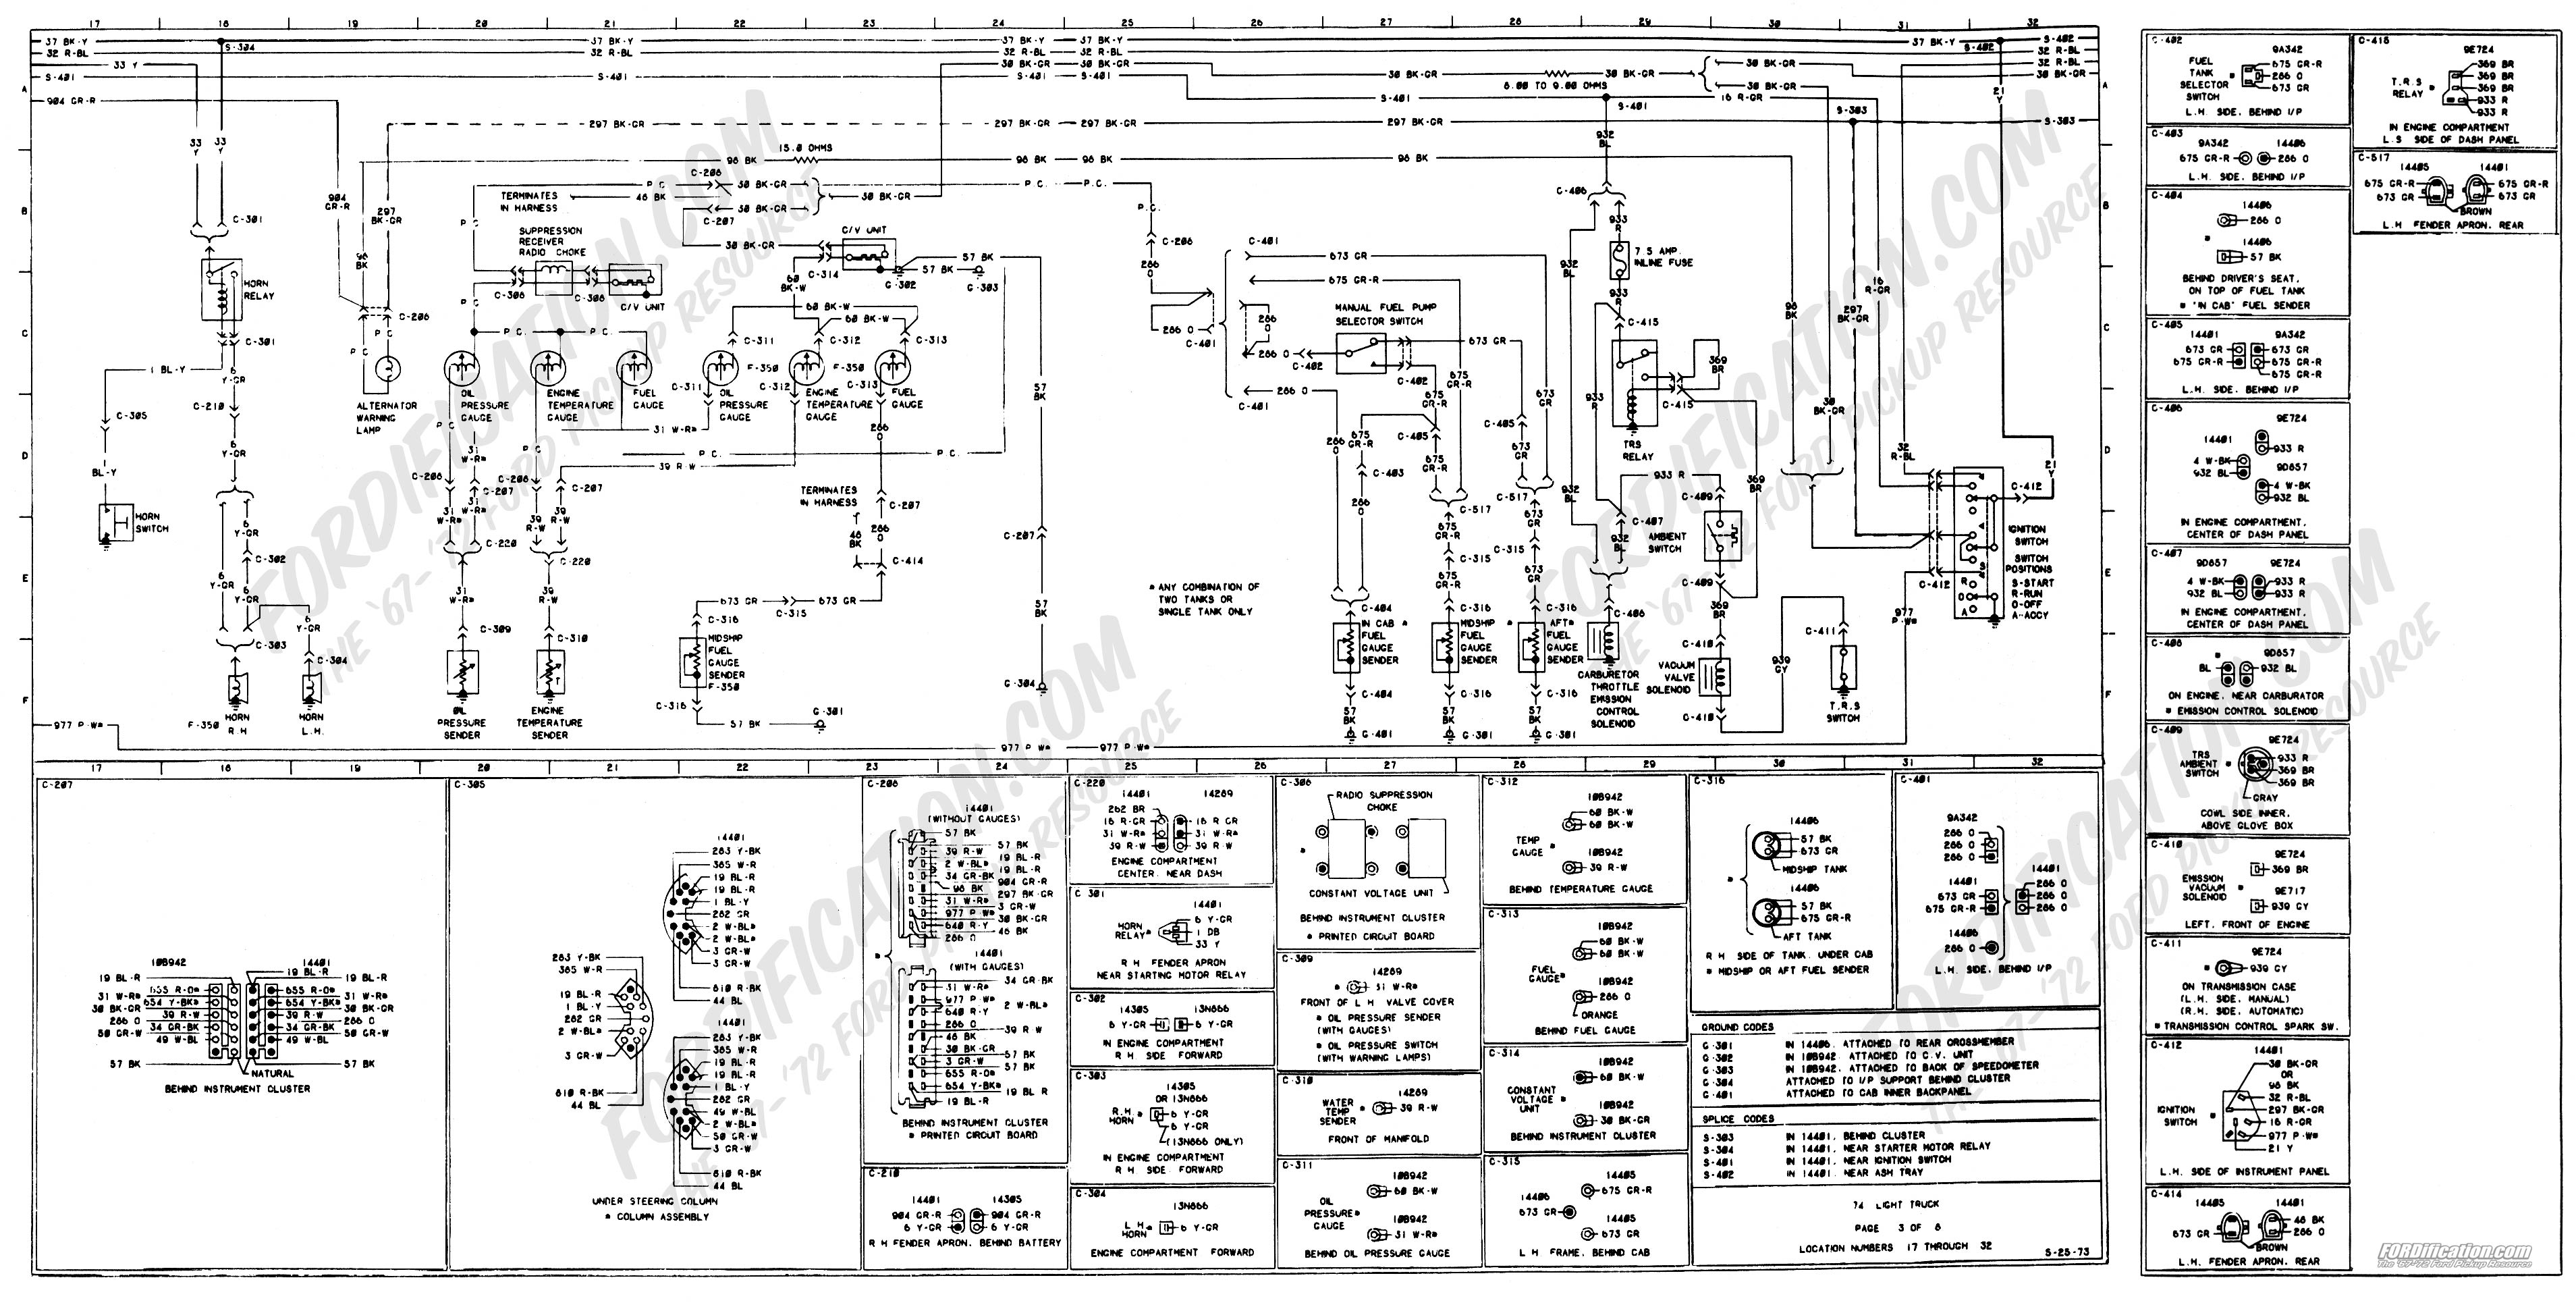 1968 Ford F 250 Radio Wiring Diagram - 2.1.tierarztpraxis-ruffy.de Wiring Diagram For Ford Truck on 1968 ford truck parts, 1968 ford truck cab mount, pickup truck diagram, 1968 ford truck brochure, 1968 ford truck radio, 1968 ford truck carburetor, truck parts diagram, ford truck engine diagram, 1968 ford truck wheels, 1968 ford truck wire schematic drawing, 1968 ford truck exhaust, 1968 ford truck shop manual, 1968 ford truck transmission, ford truck rear brake diagram, 93 ford relay diagram, 1968 ford truck air cleaner,